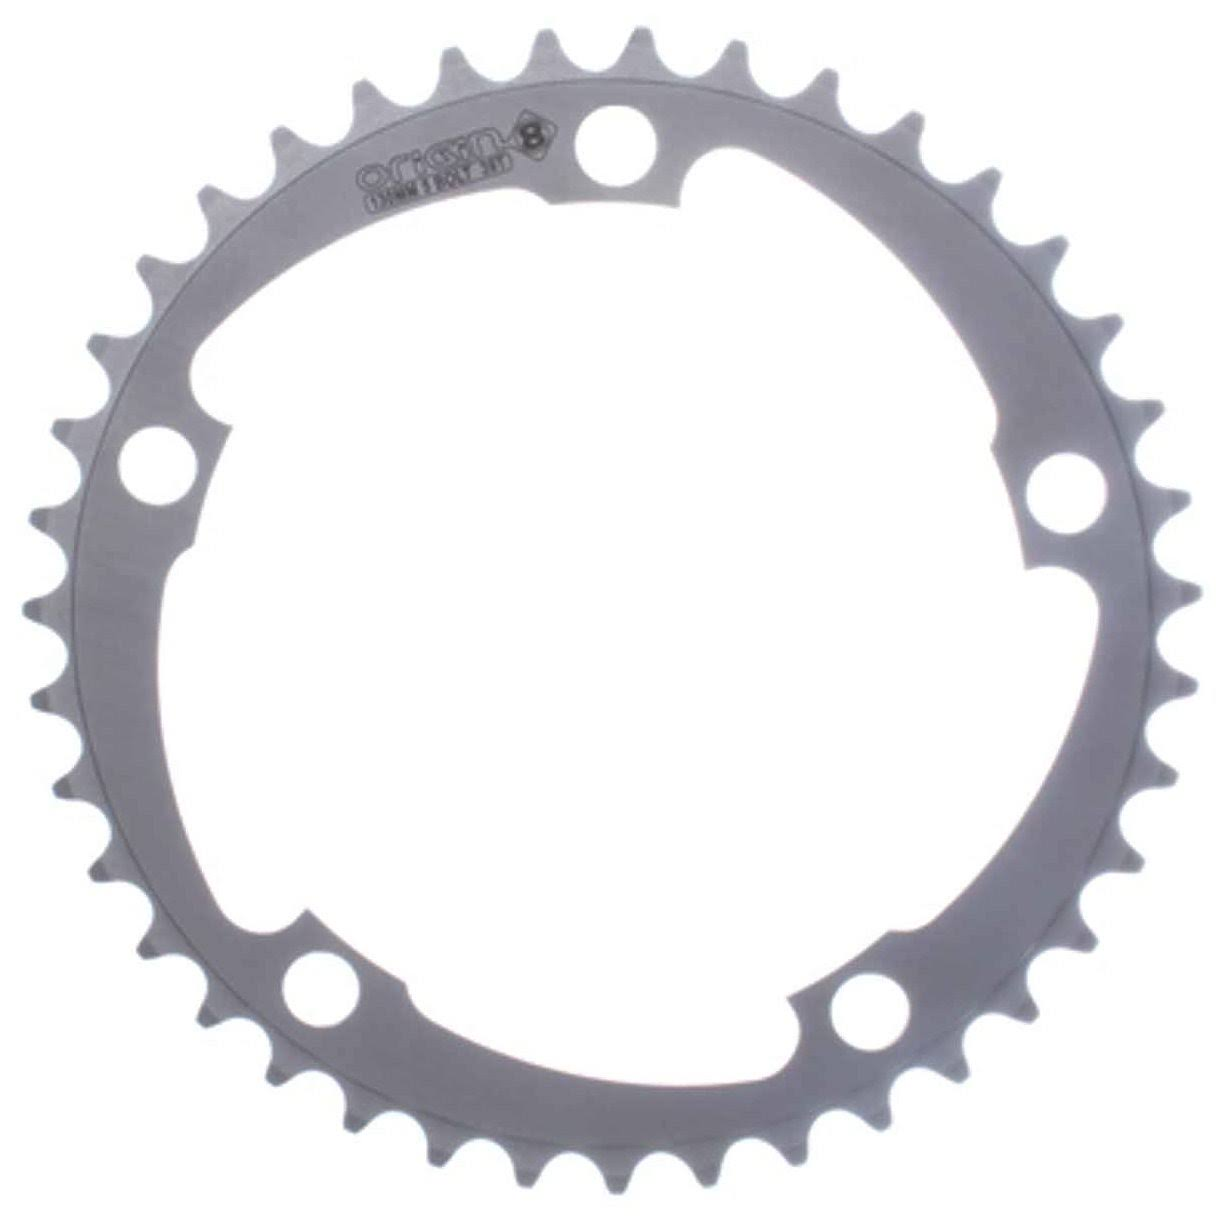 Origin8 Alloy Blade Bicycle Chainring - Silver, 110mm, 36 Teeth